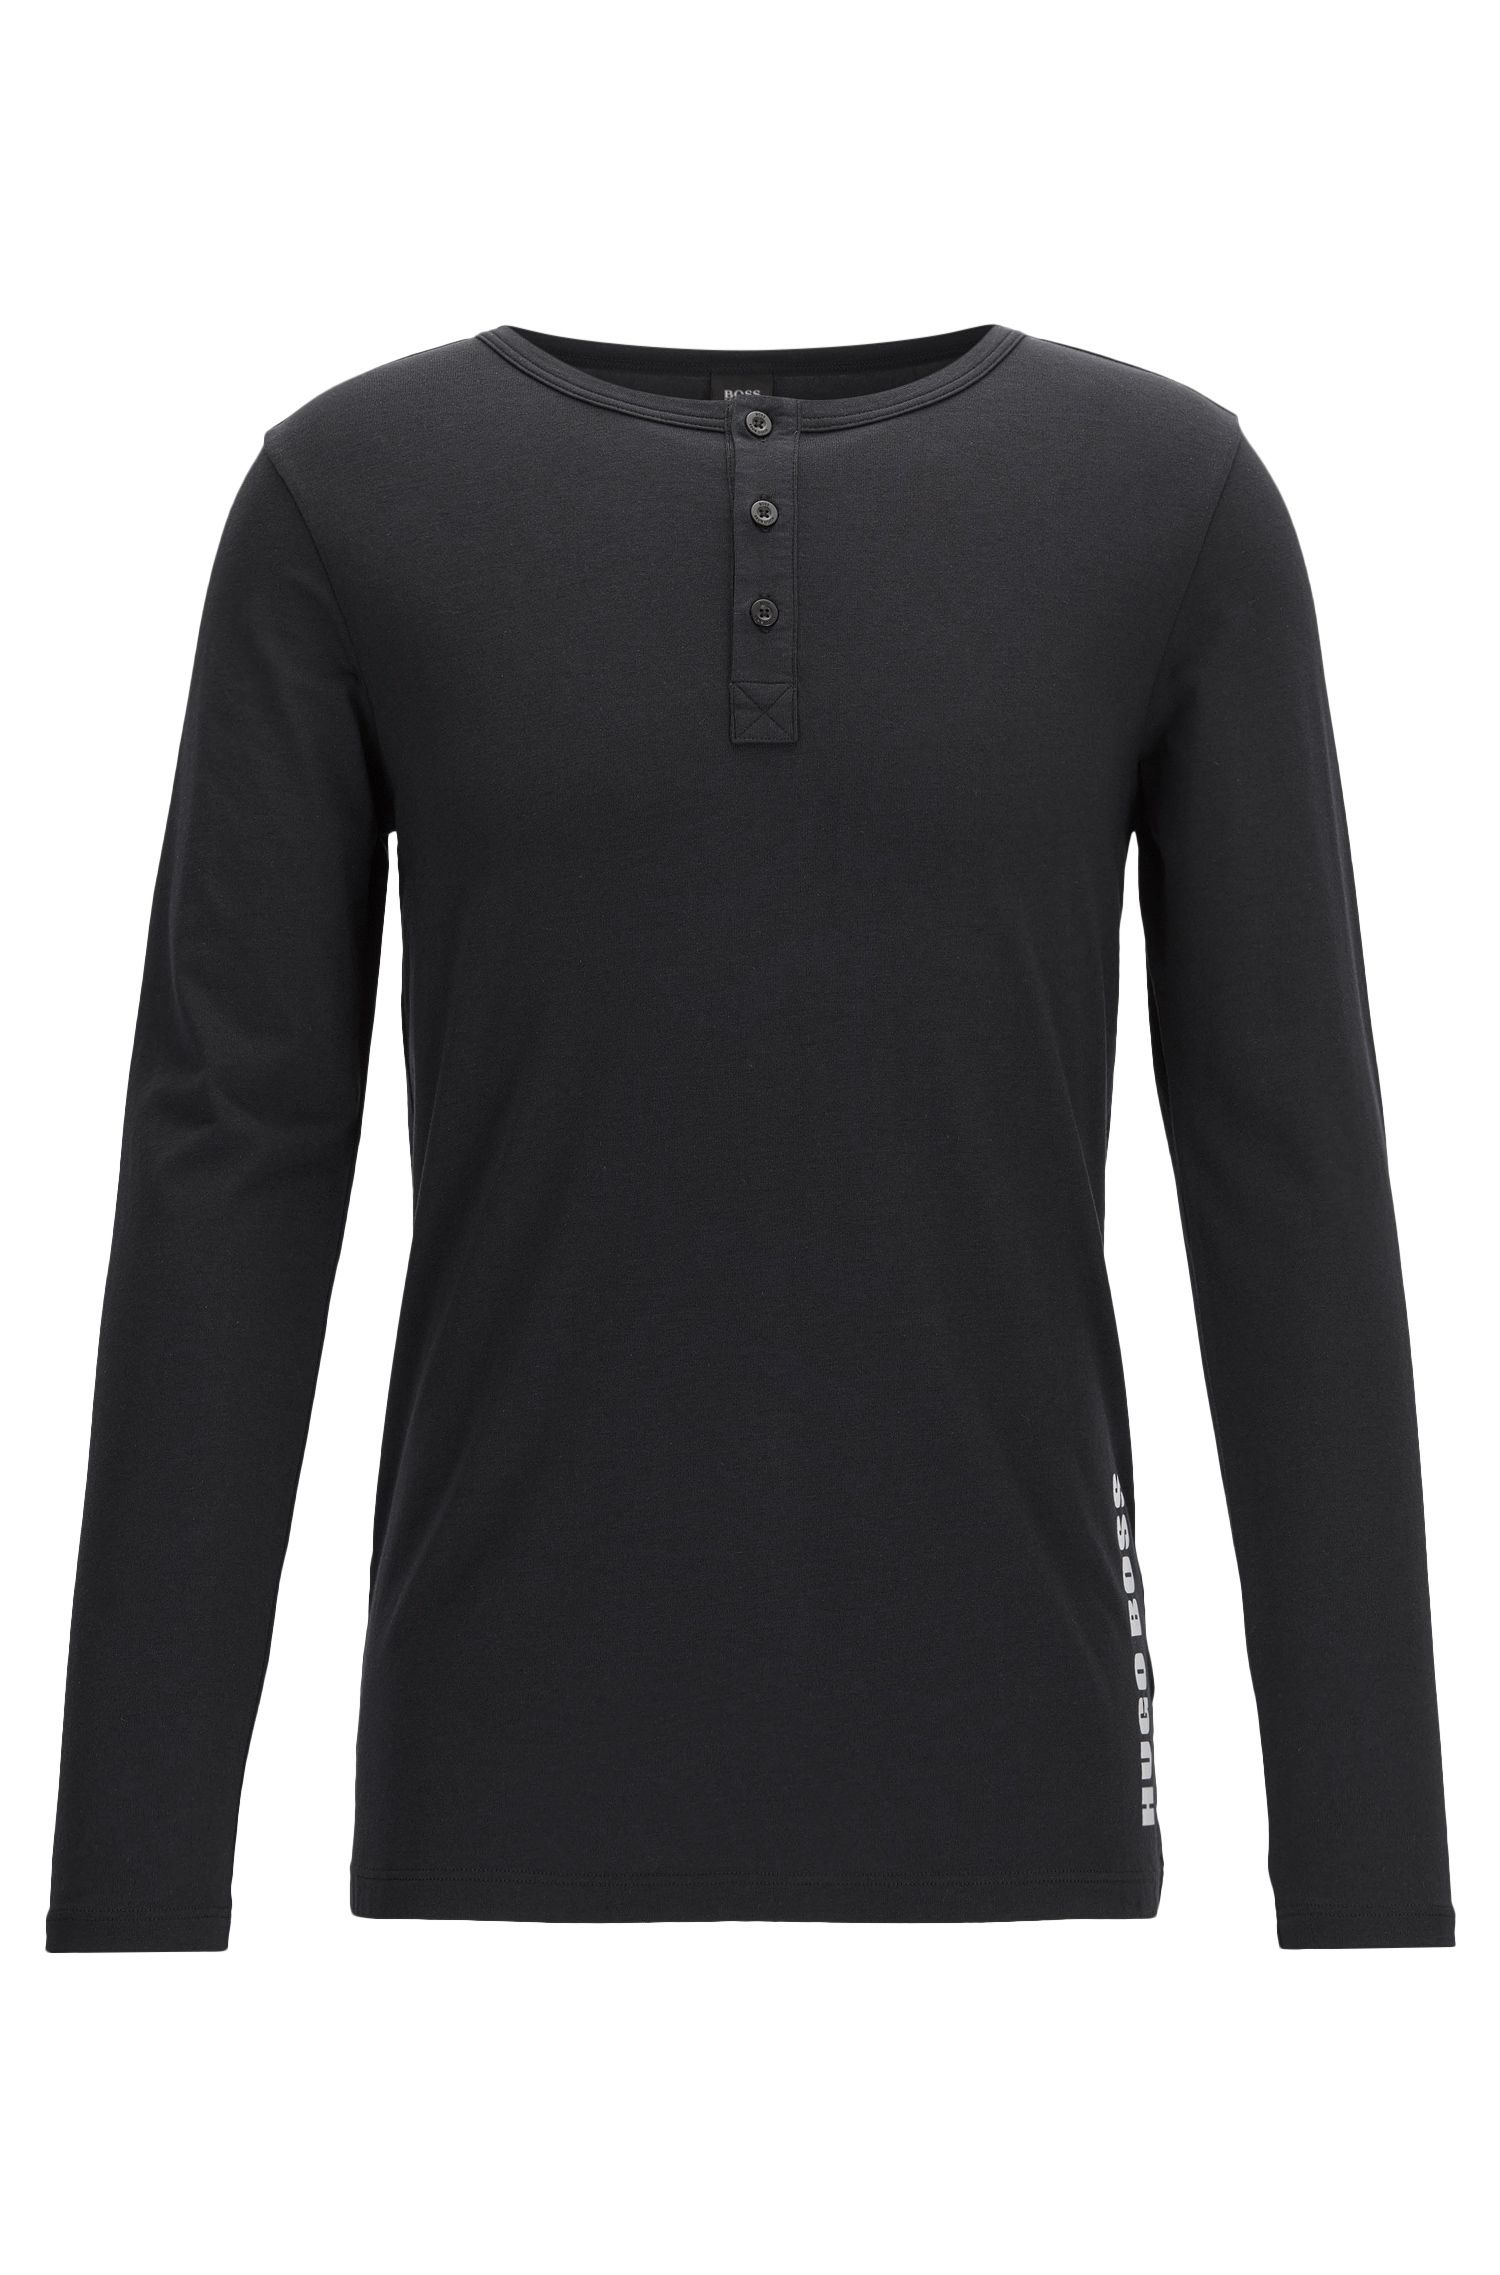 Long-sleeved underwear T-shirt in single jersey